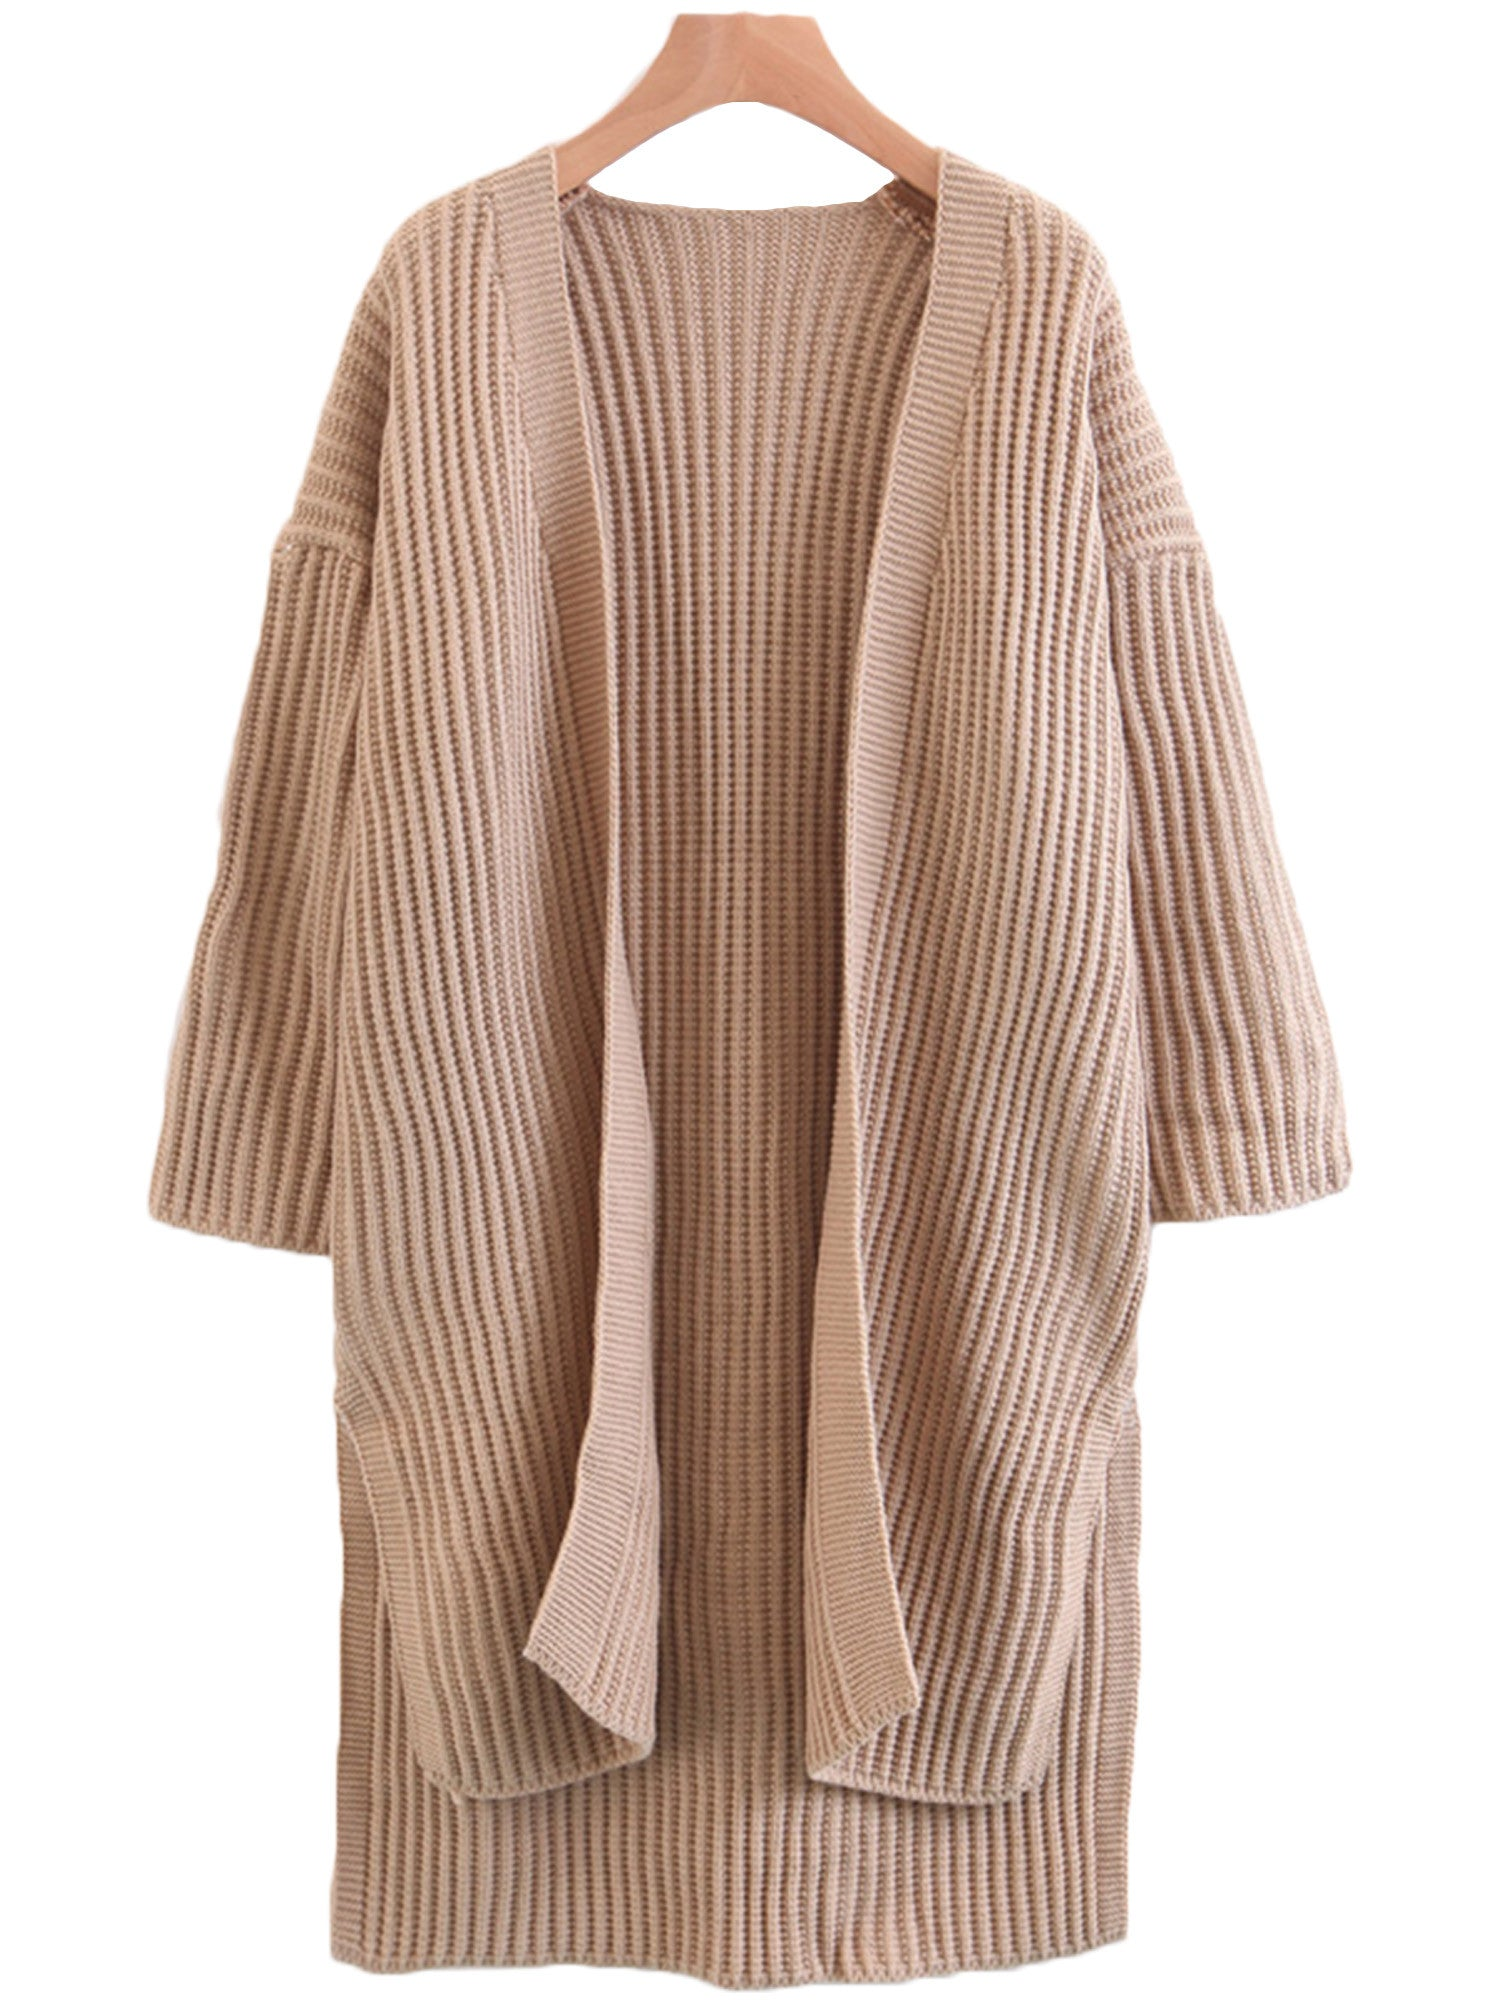 'Jerrica' Open Wrap Cardigan